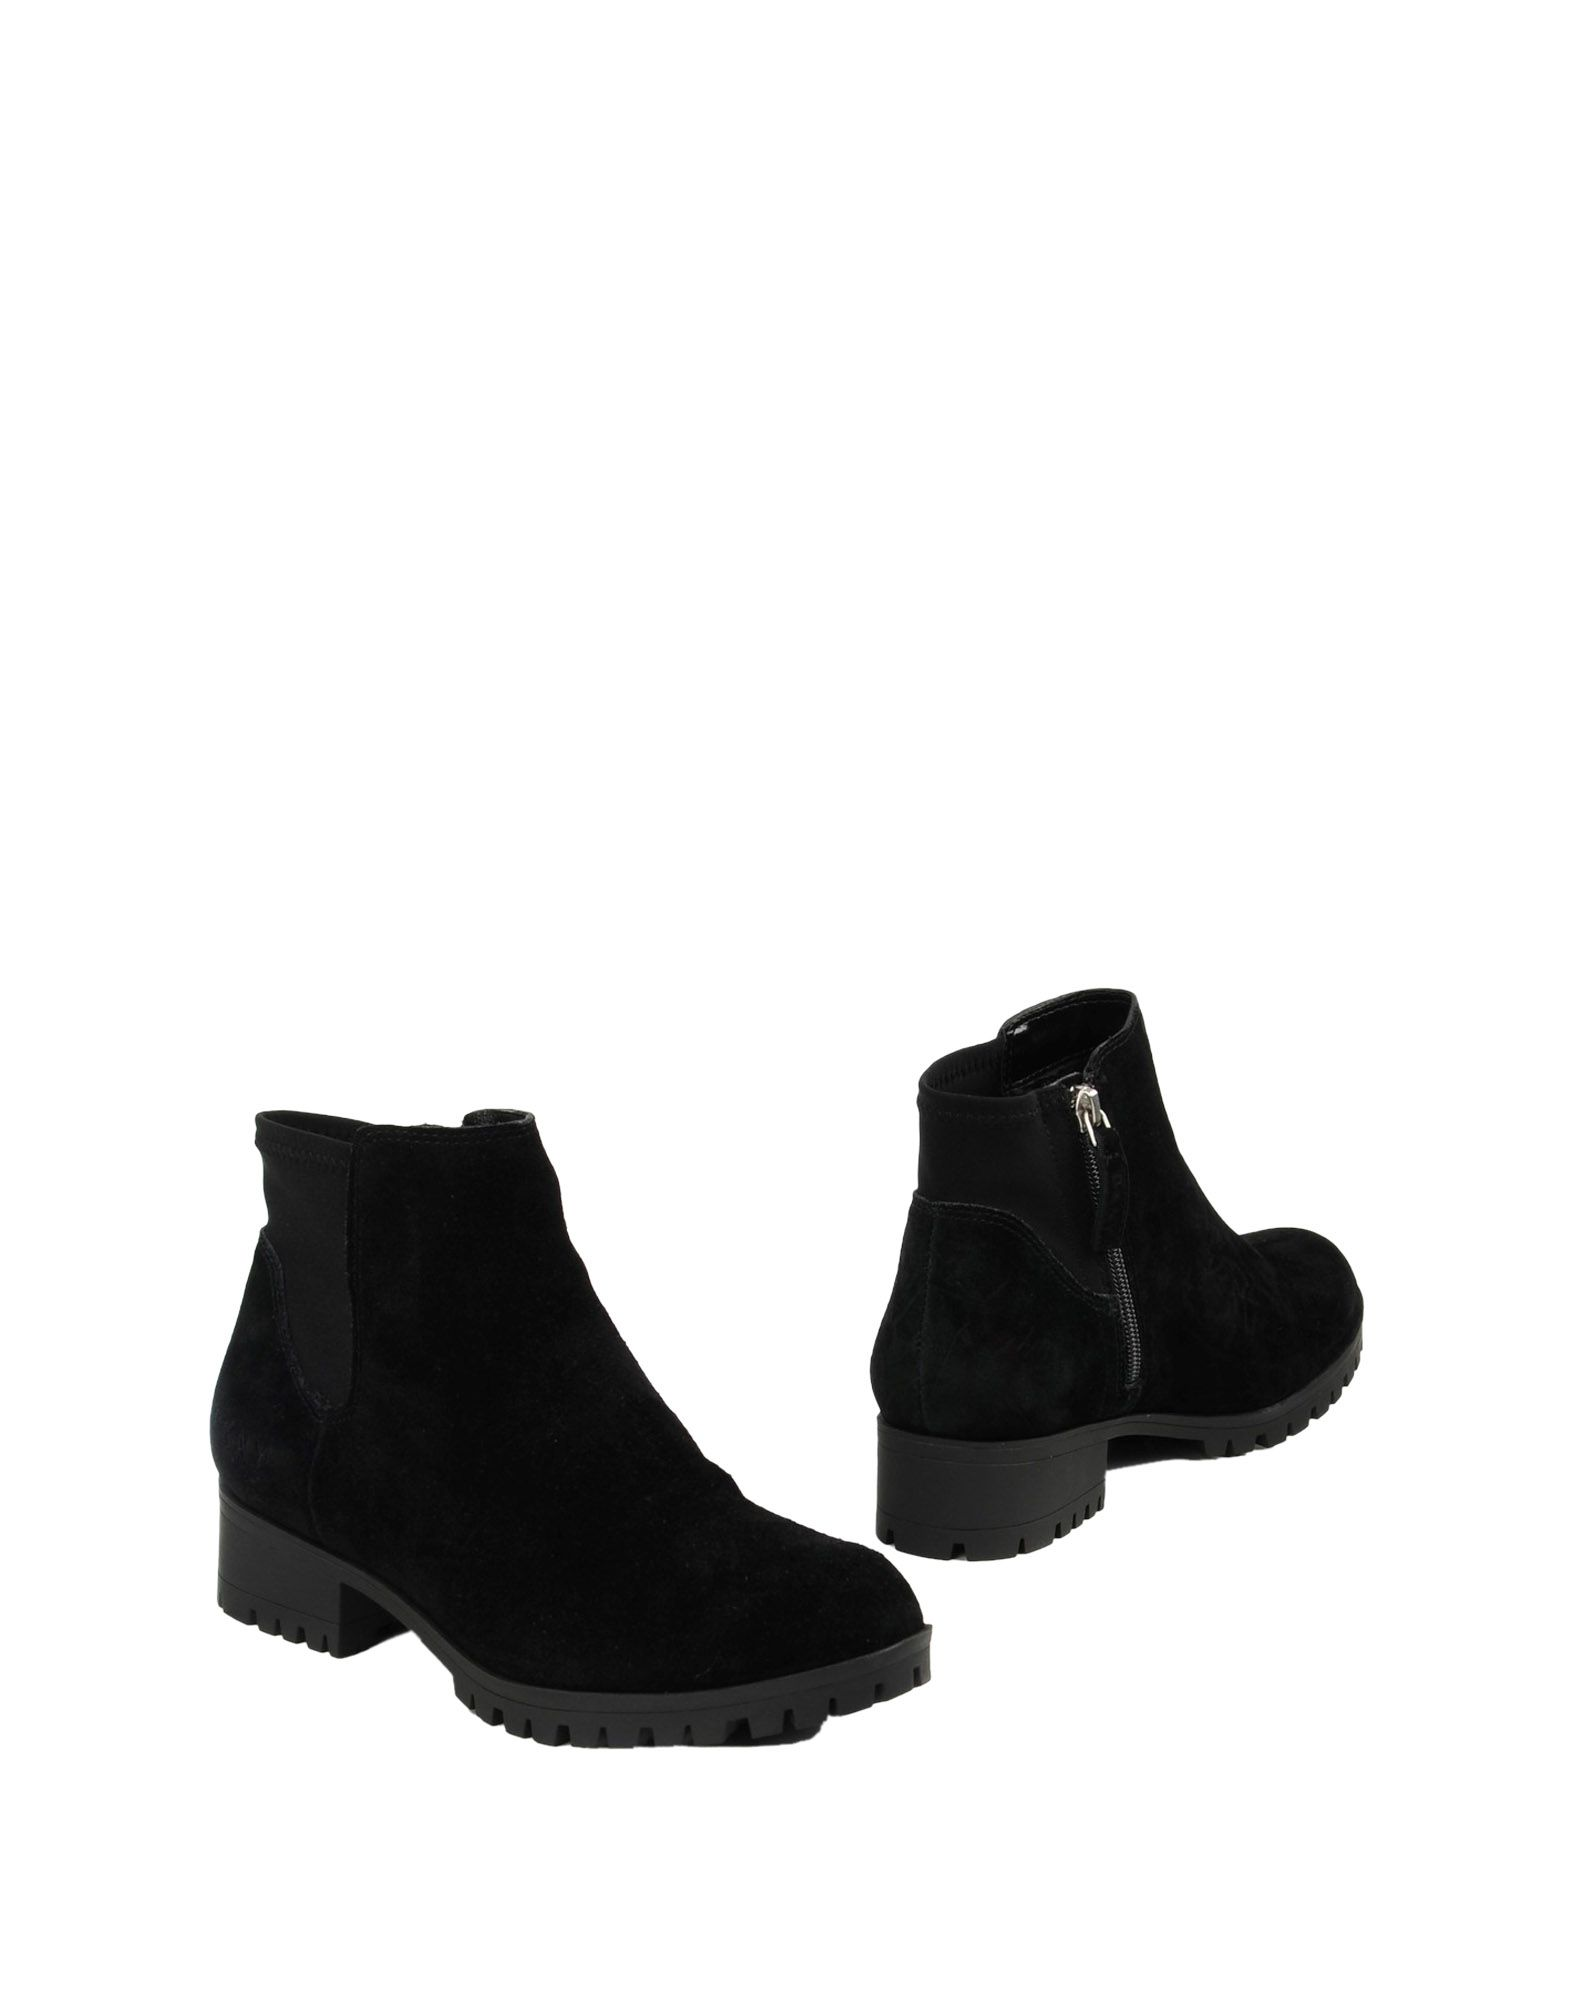 Dkny Mina Boot Anckle Boot - Ankle Boot Mina - Women Dkny Ankle Boots online on  Australia - 11380203FD b02c67